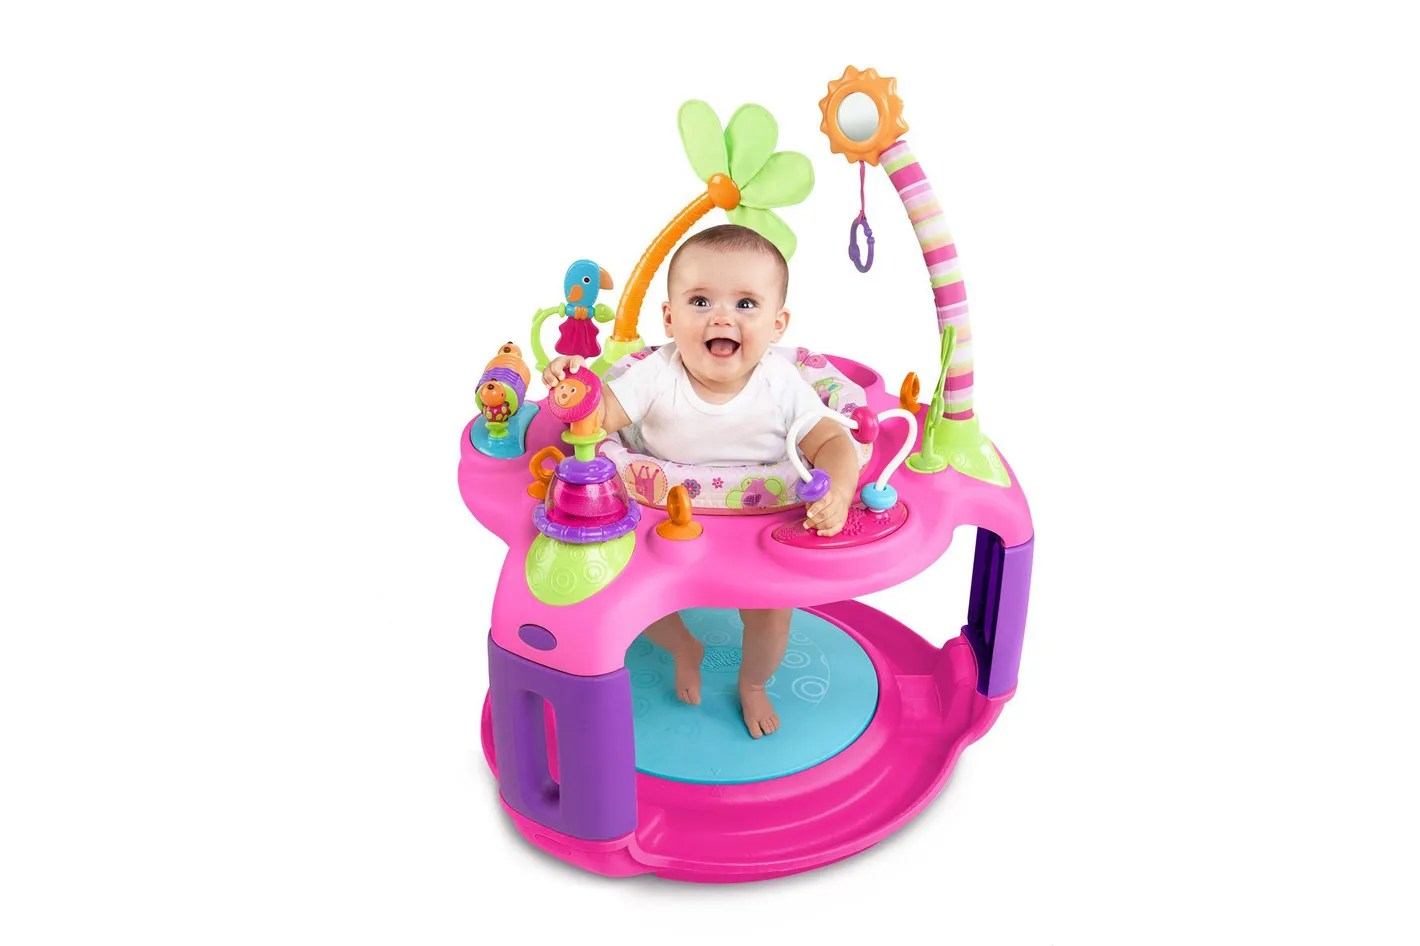 Baby Activity Center Bright Starts Sweet Safari Bounce A Round Activity Center